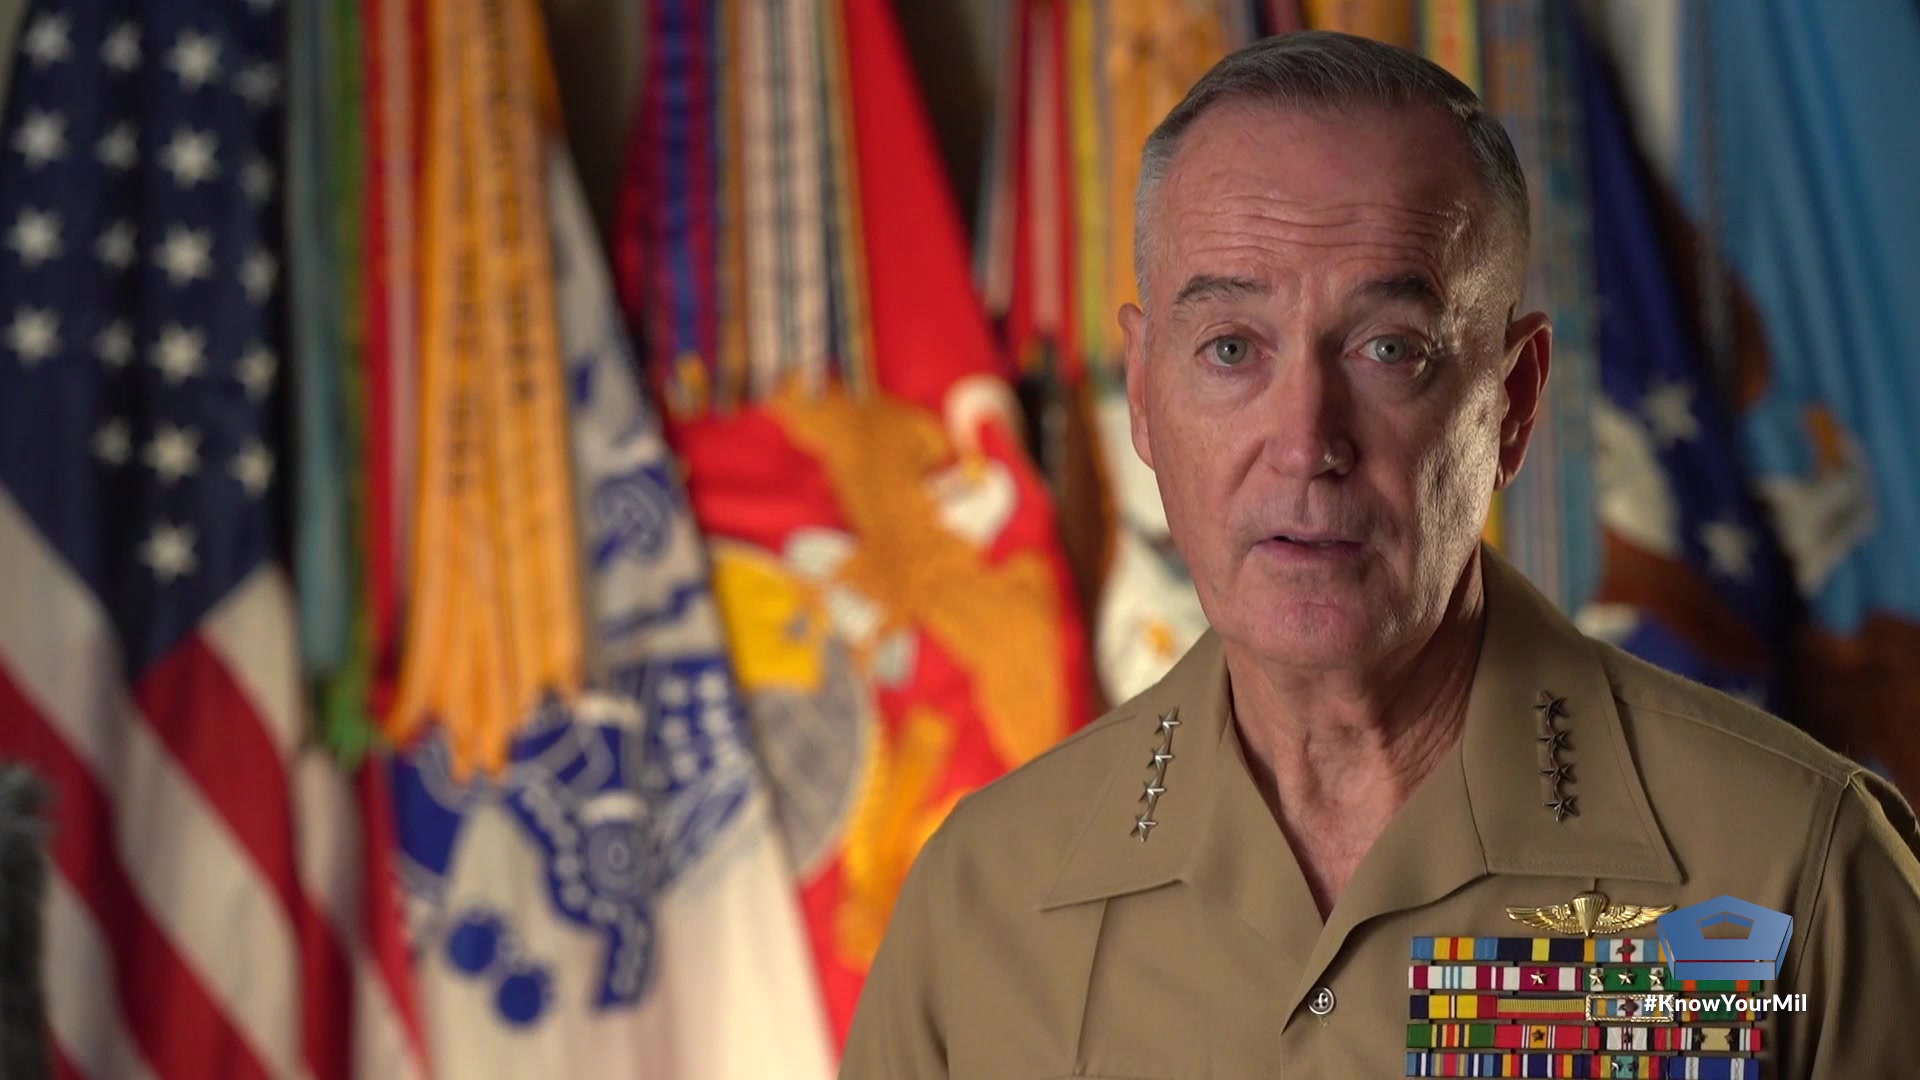 Marine Corps Gen. Joe Dunford, the 19th chairman of the Joint Chiefs of Staff, delivers a farewell message to members of the U.S. armed forces and their families at the Pentagon, Sept. 24, 2019.